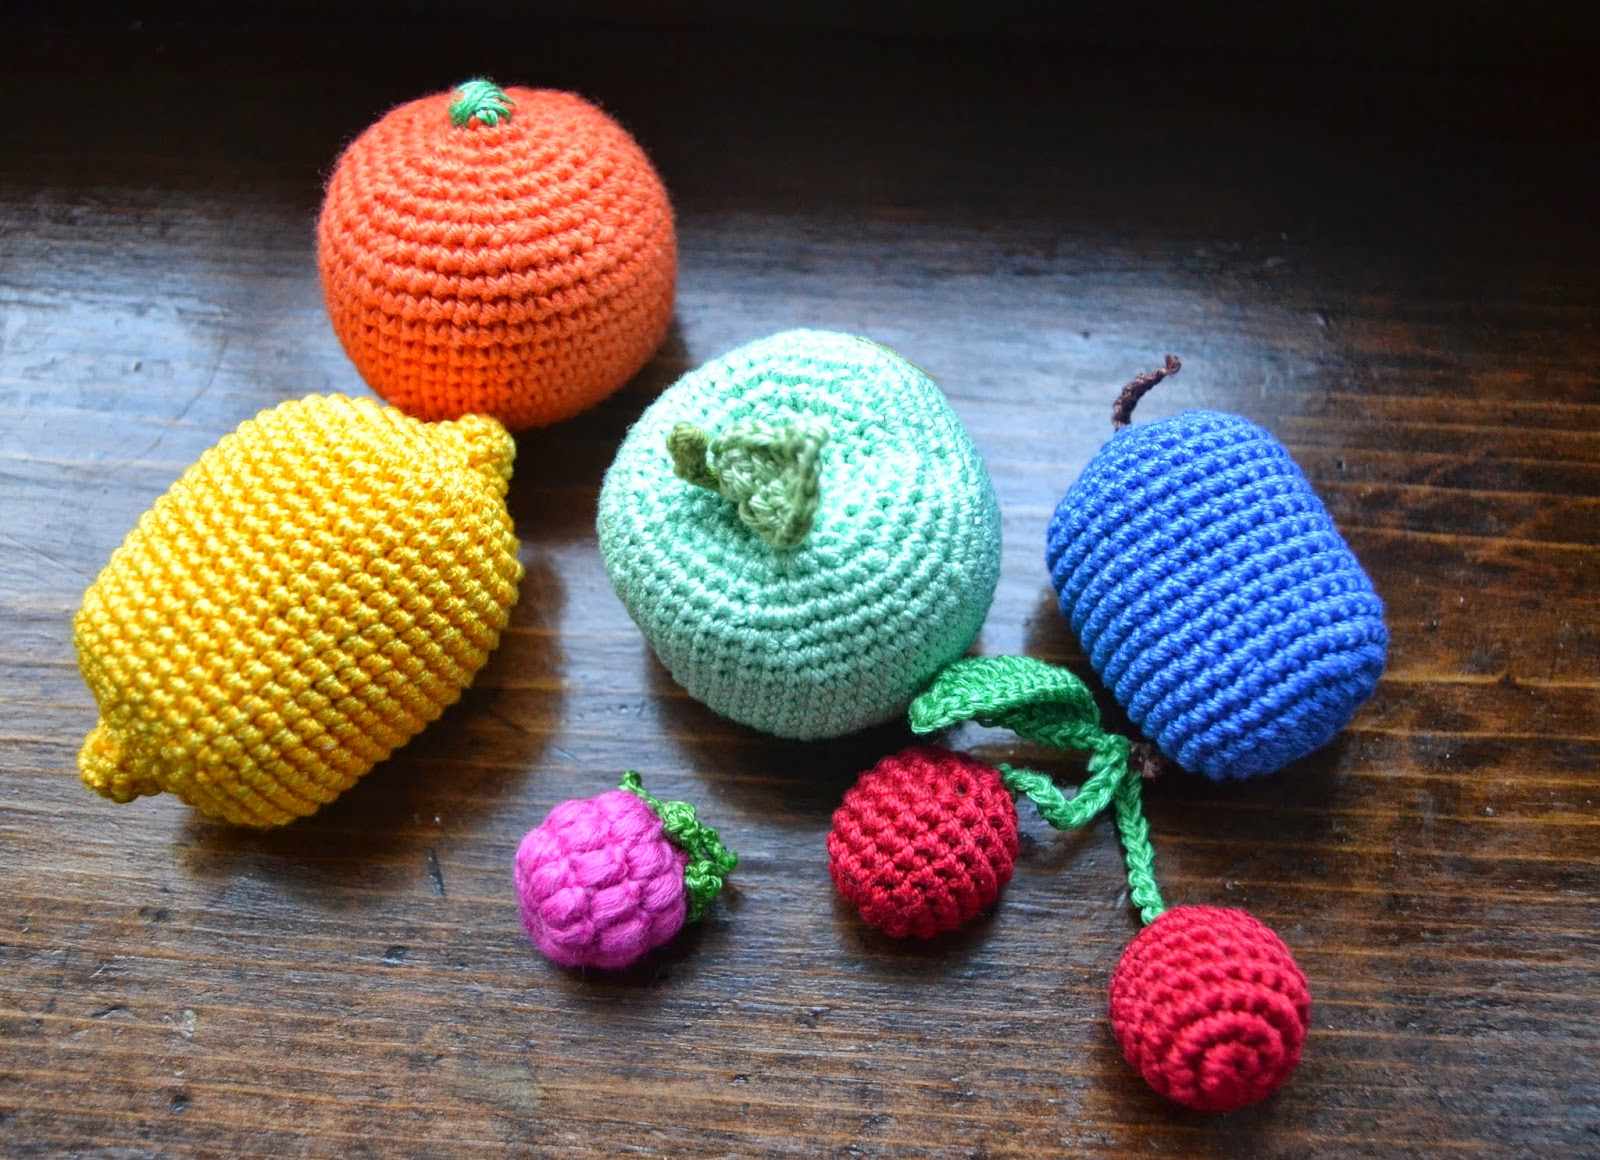 Crochet fruit set